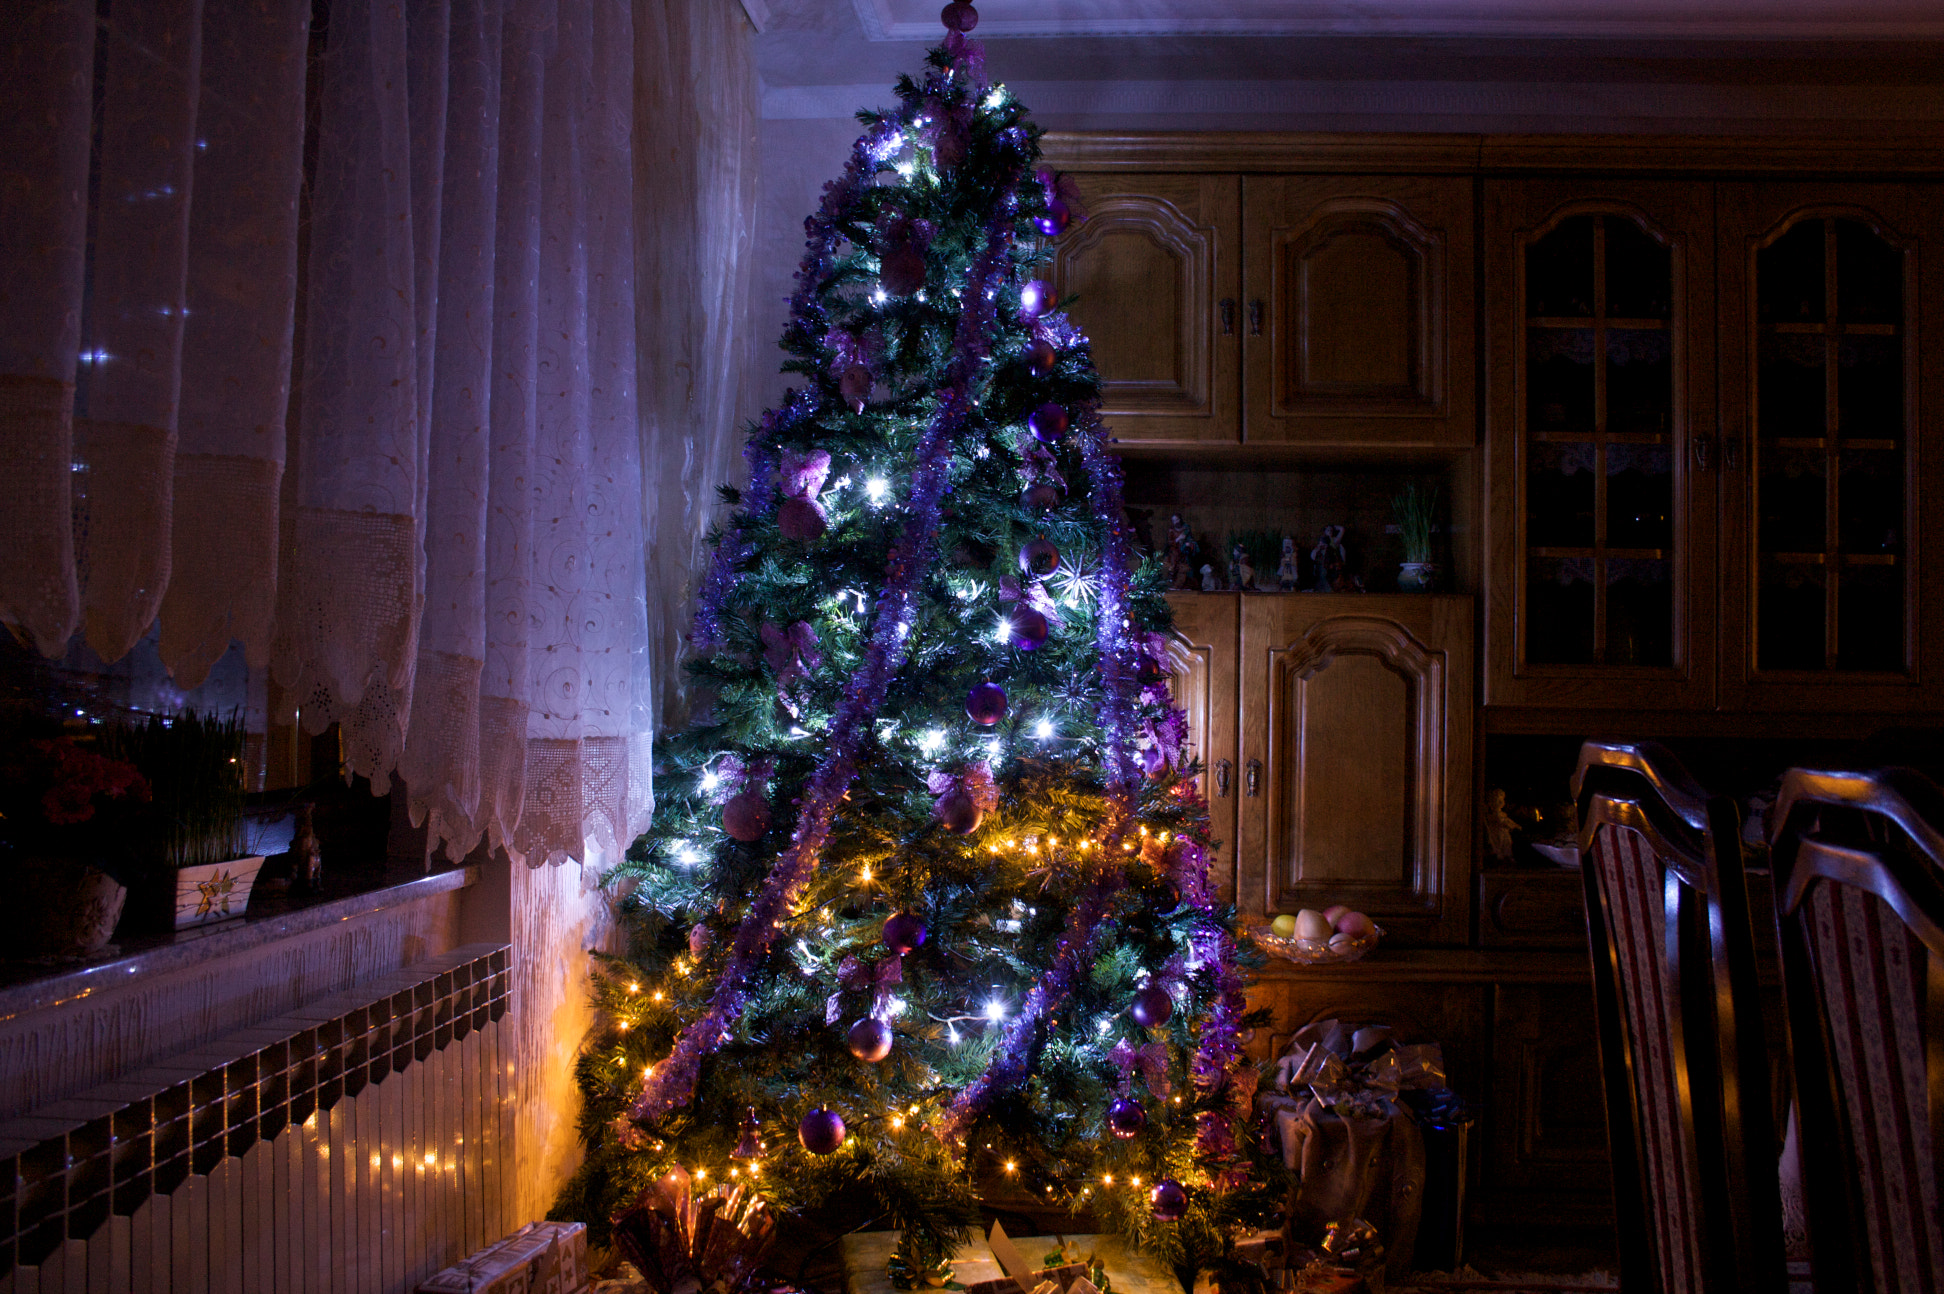 Photograph Christmas tree by Darko Kontin on 500px